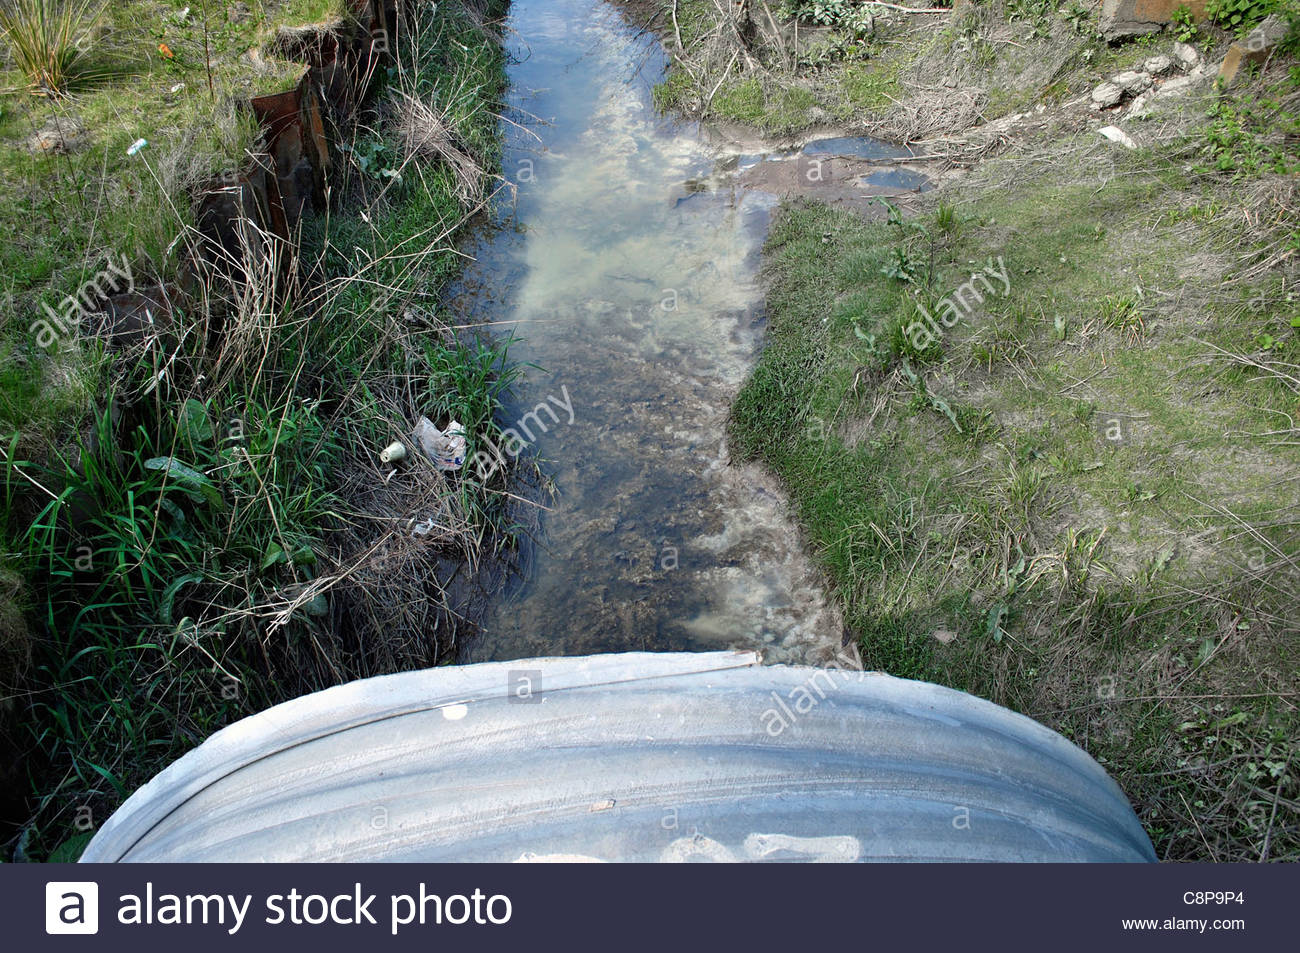 Waterway polluted by discharges from chemical industry, UK - Stock Image